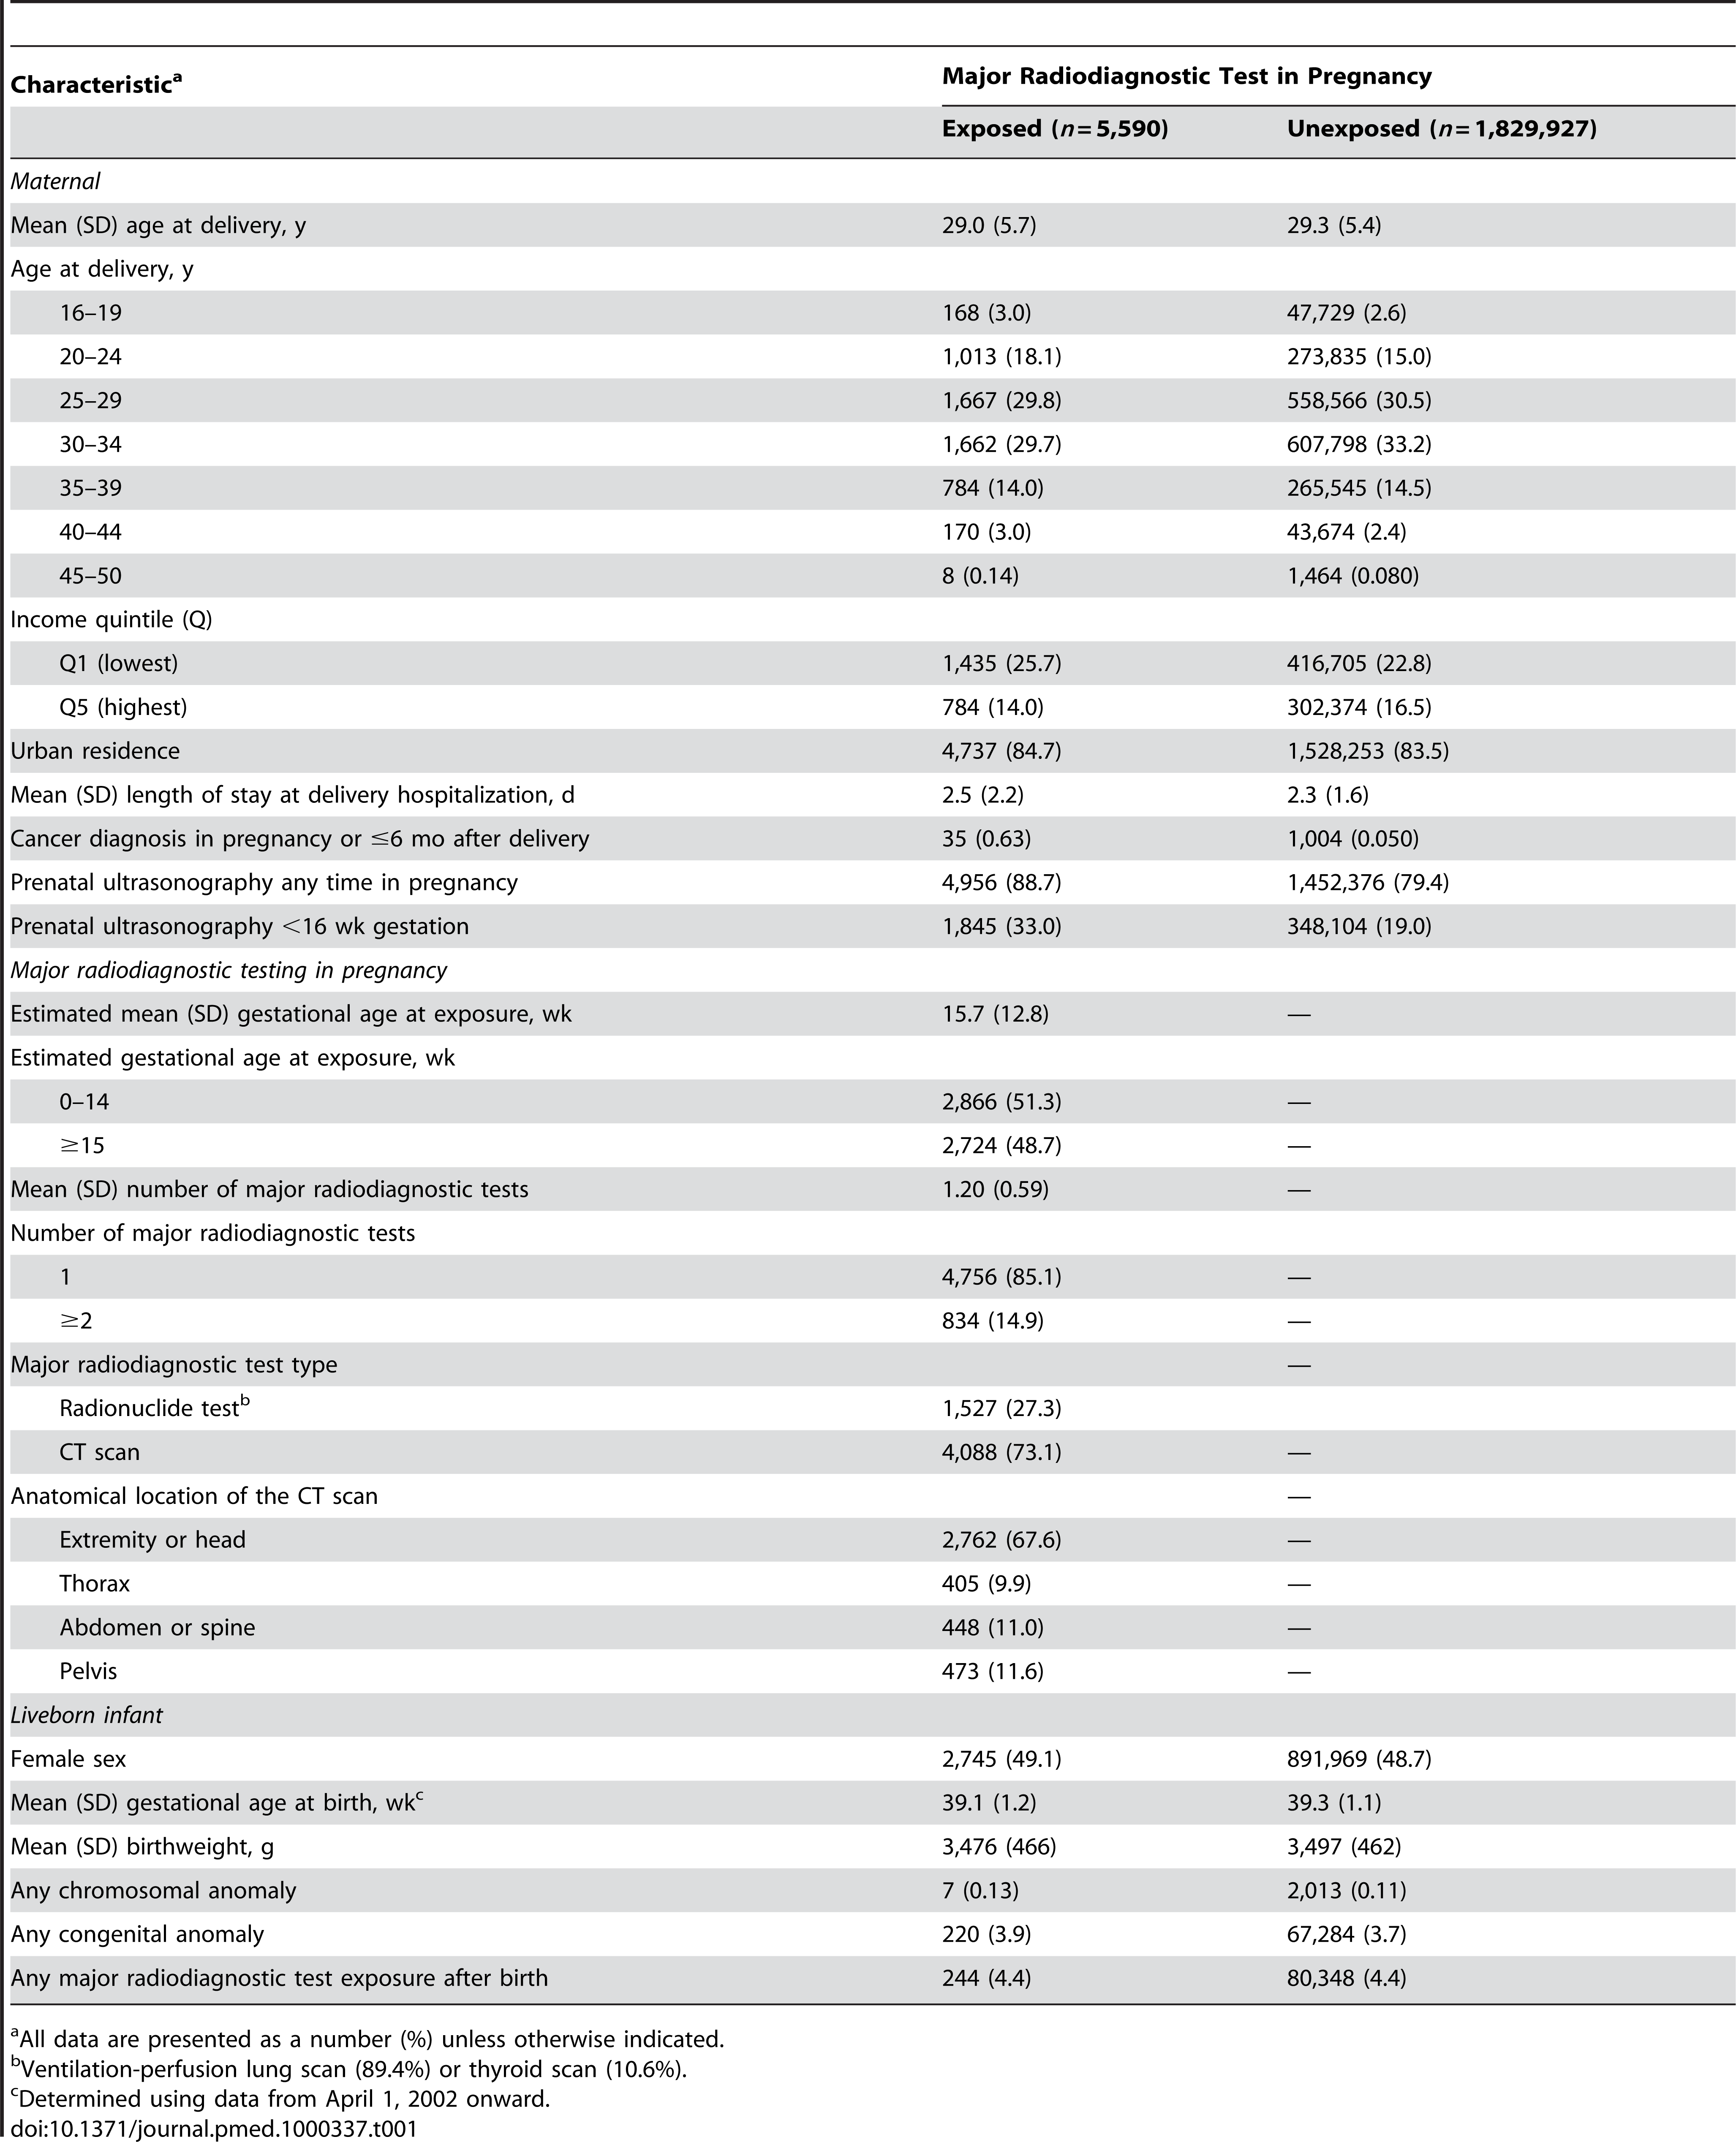 Characteristics of mothers and their infants who were and who were not exposed to a major radiodiagnostic testing in pregnancy.